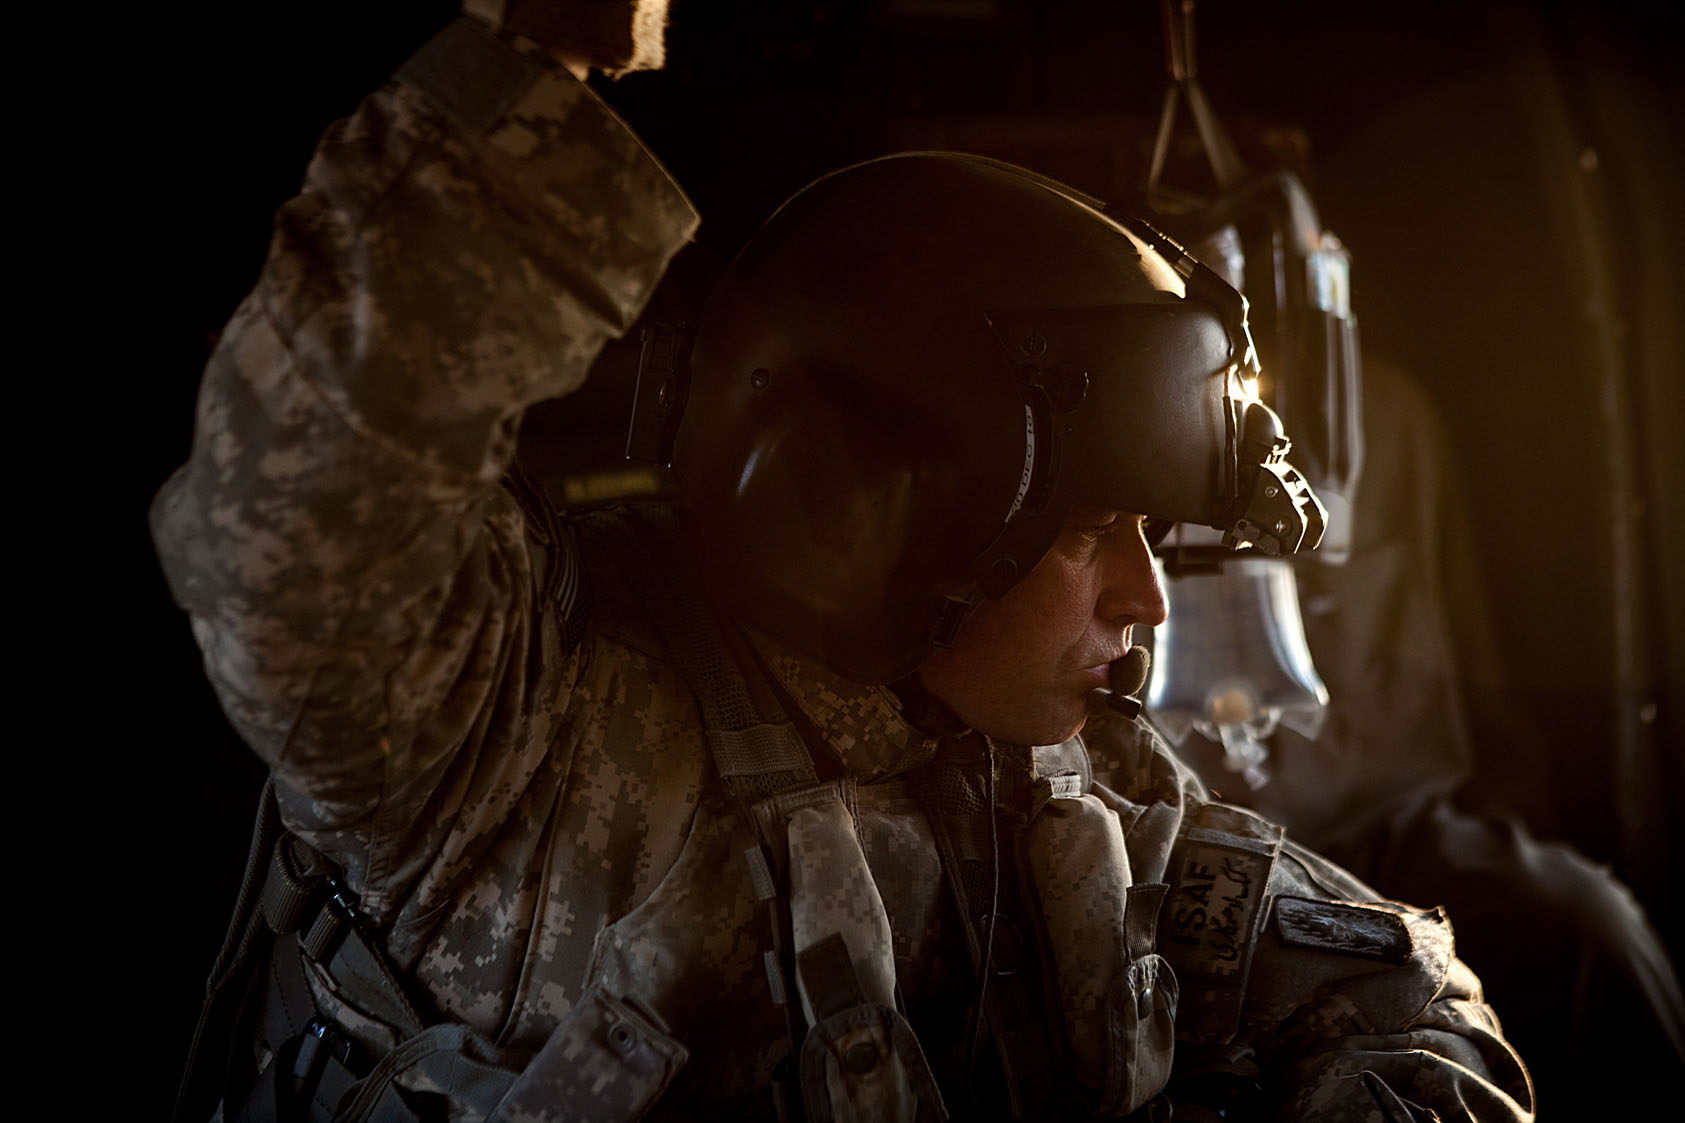 Staff Sergeant Christopher Meece, a crew chief in a United States Army's Dustoff medevac team, looks out from the window of a Black Hawk helicopter, Helmand Province, Afghanistan, November 24, 2010.